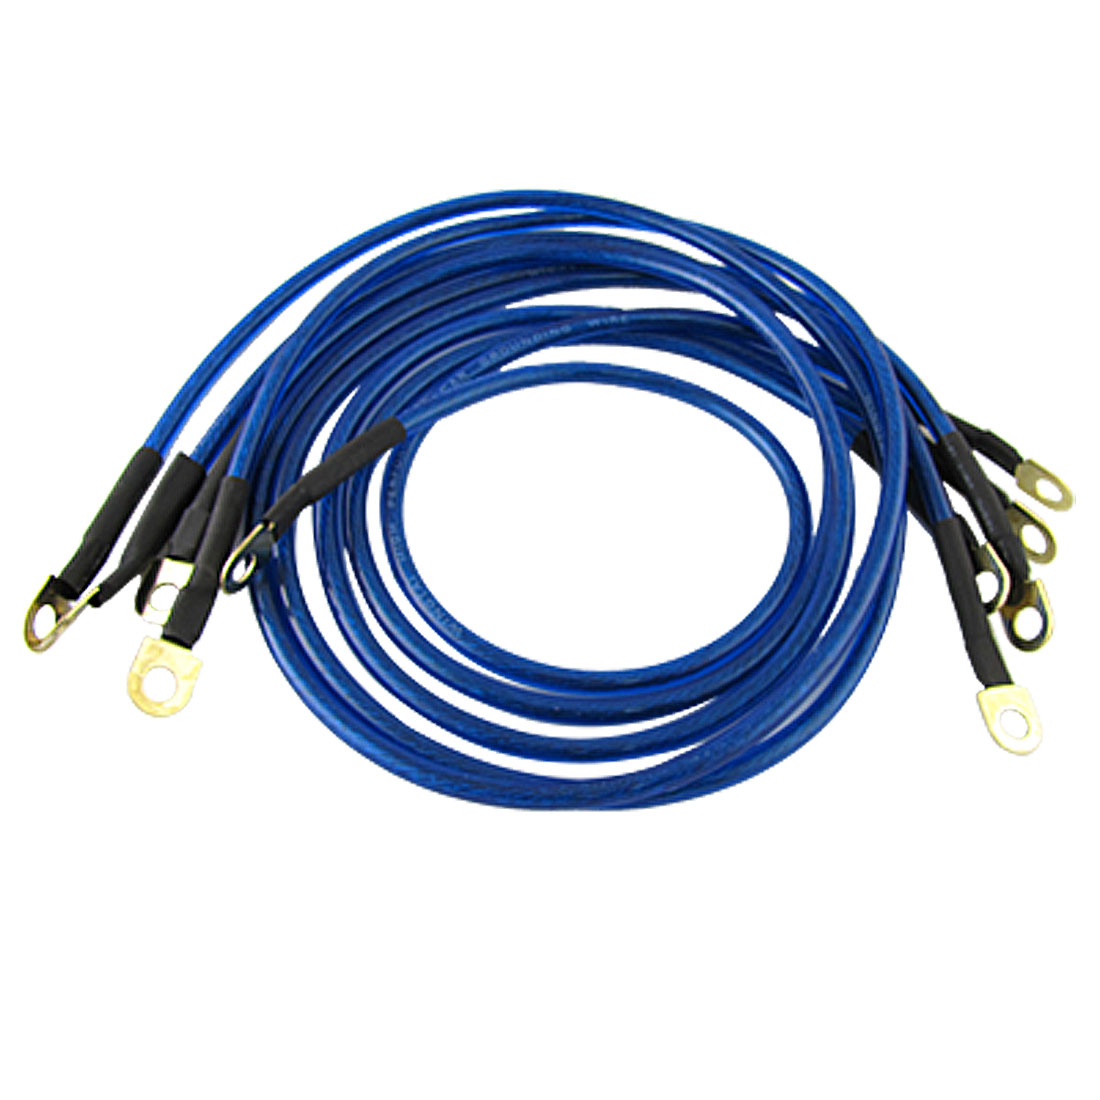 Universal Ground Wire Cable System Kit Blue